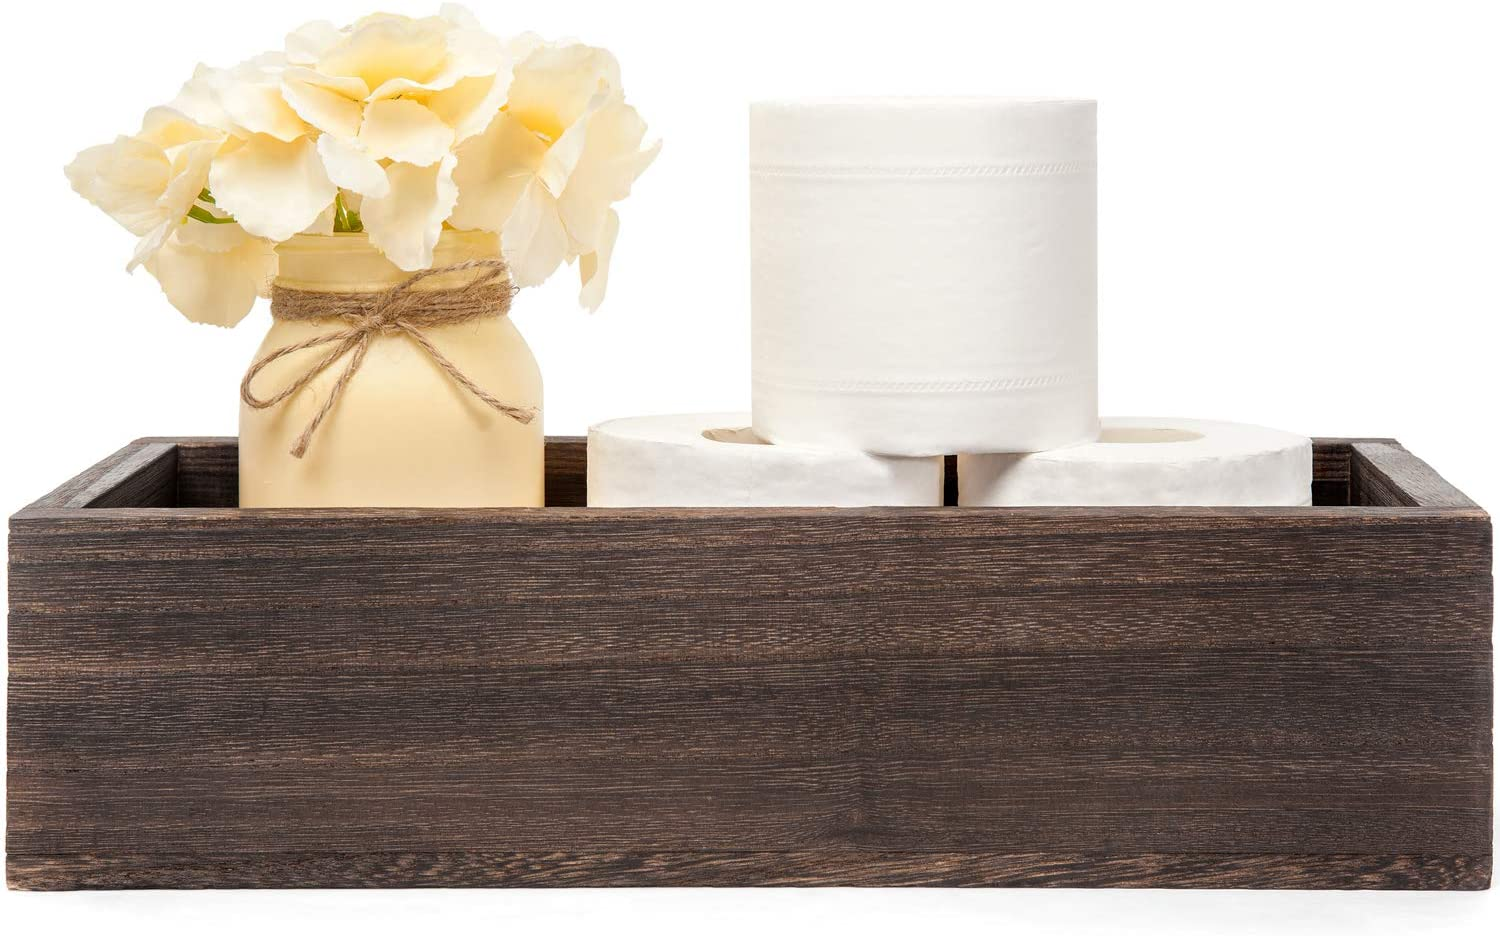 Bathroom Decor Box Wooden Toilet Paper Holder Funny Home Decor Box for Bathroom Table and Counter Rustic Grey Kitchen